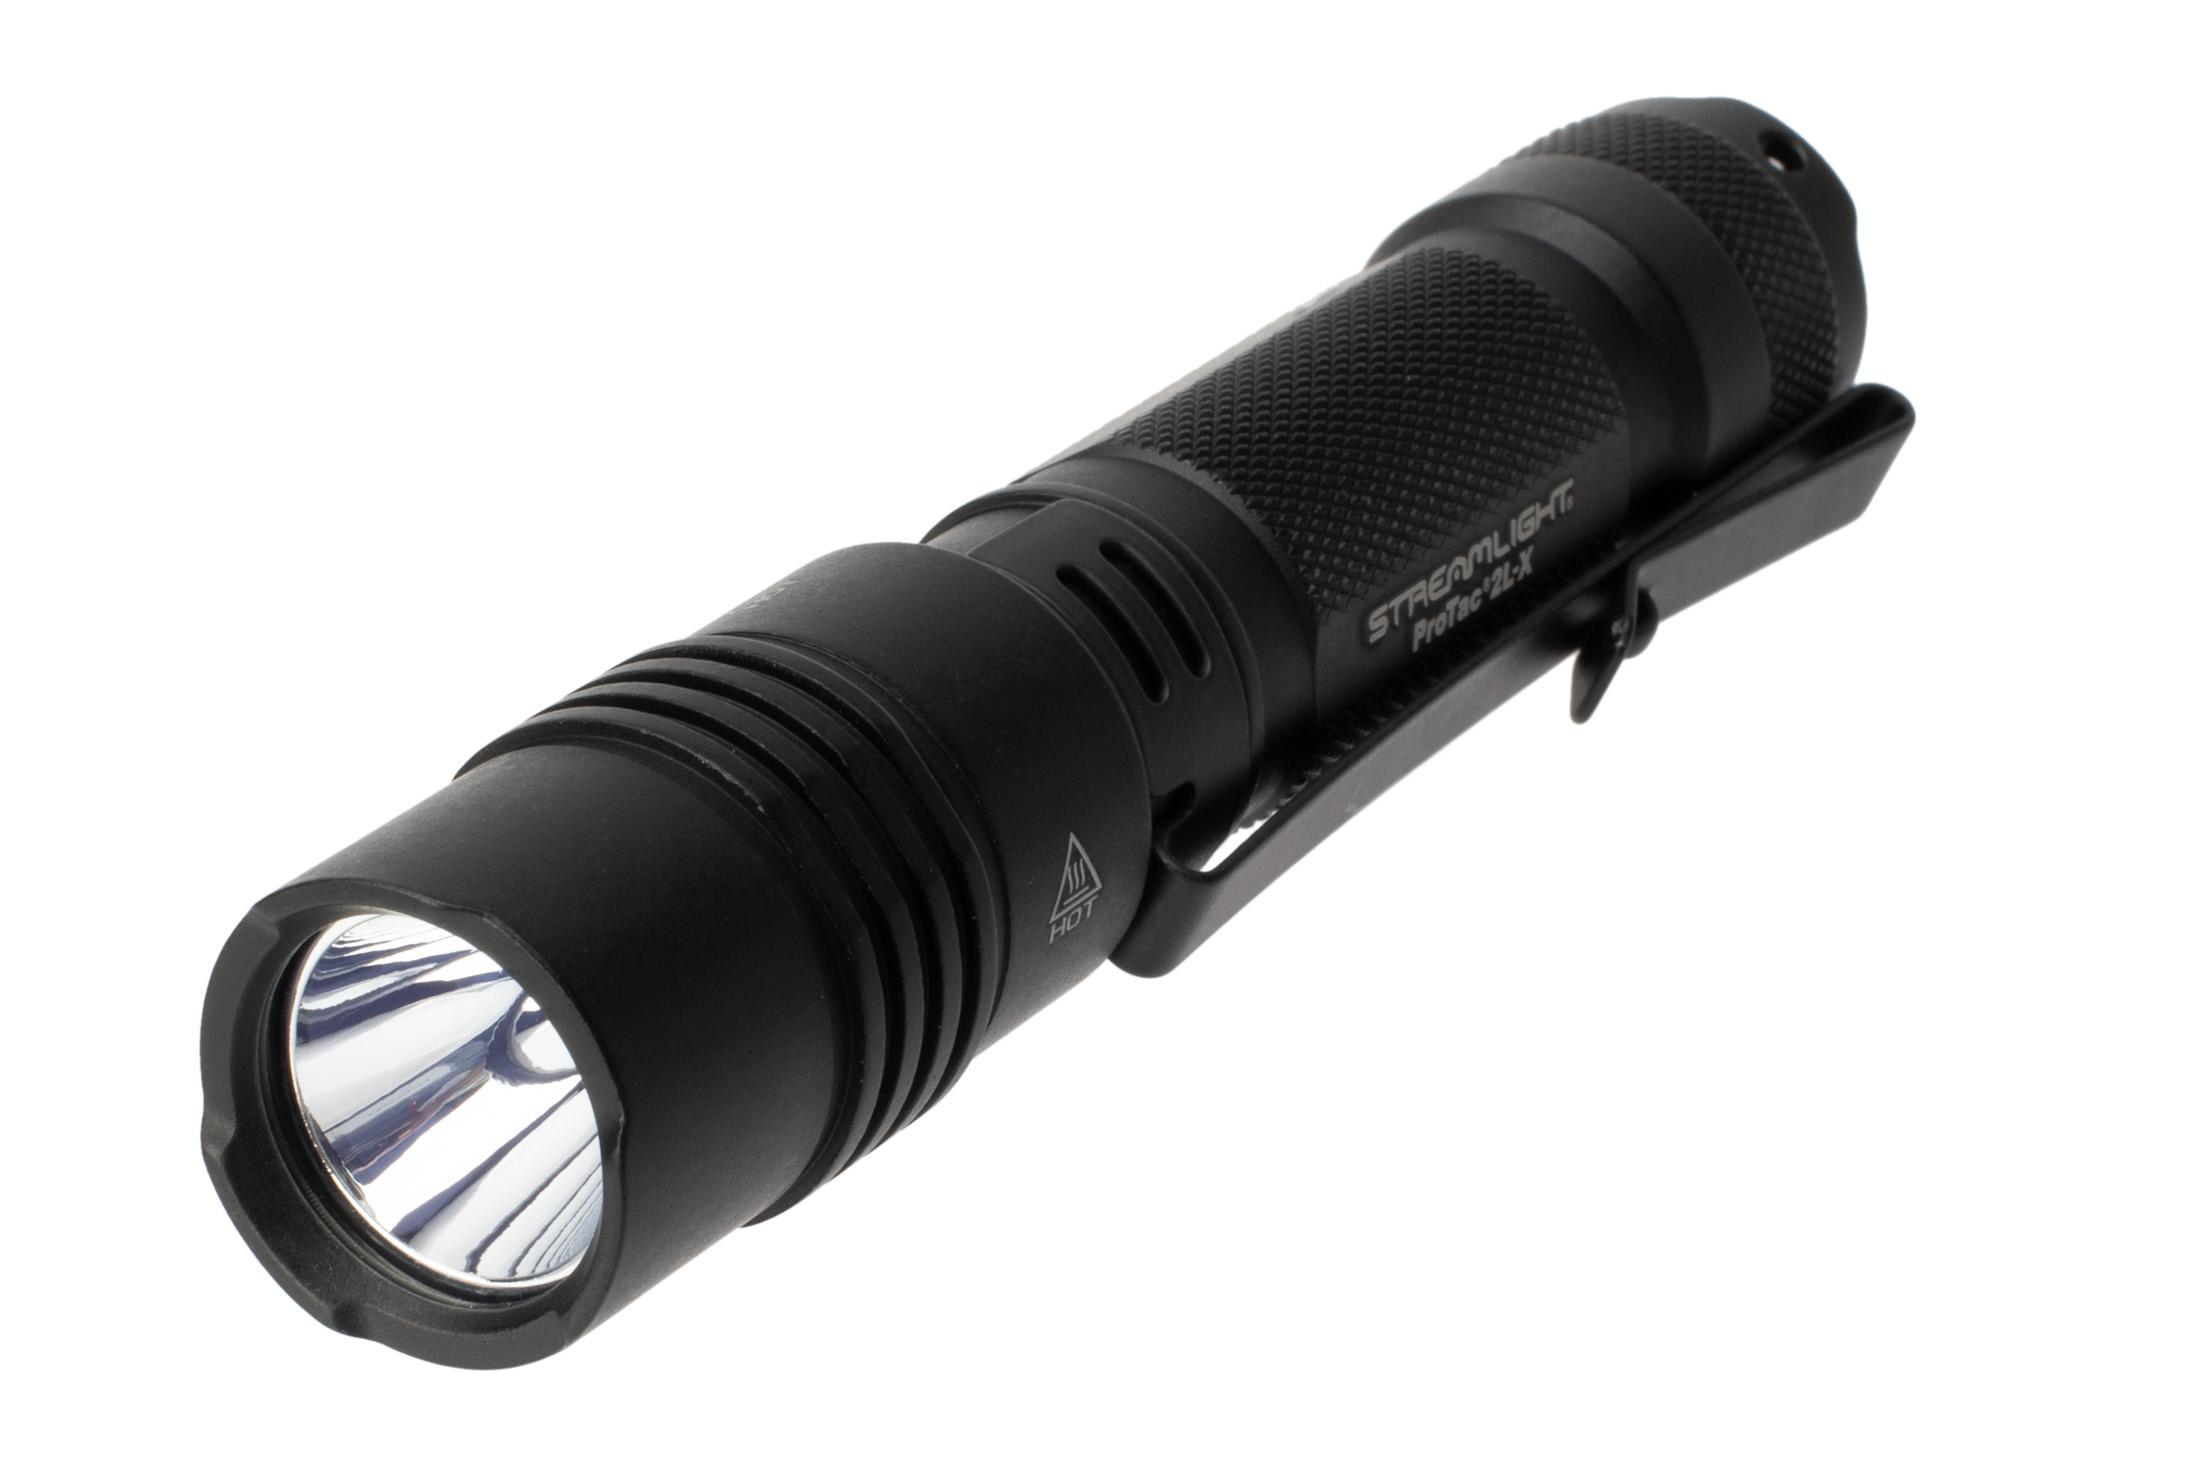 The Streamlight ProTac 2L X dual fuel tactical flashlight outputs 500 lumens